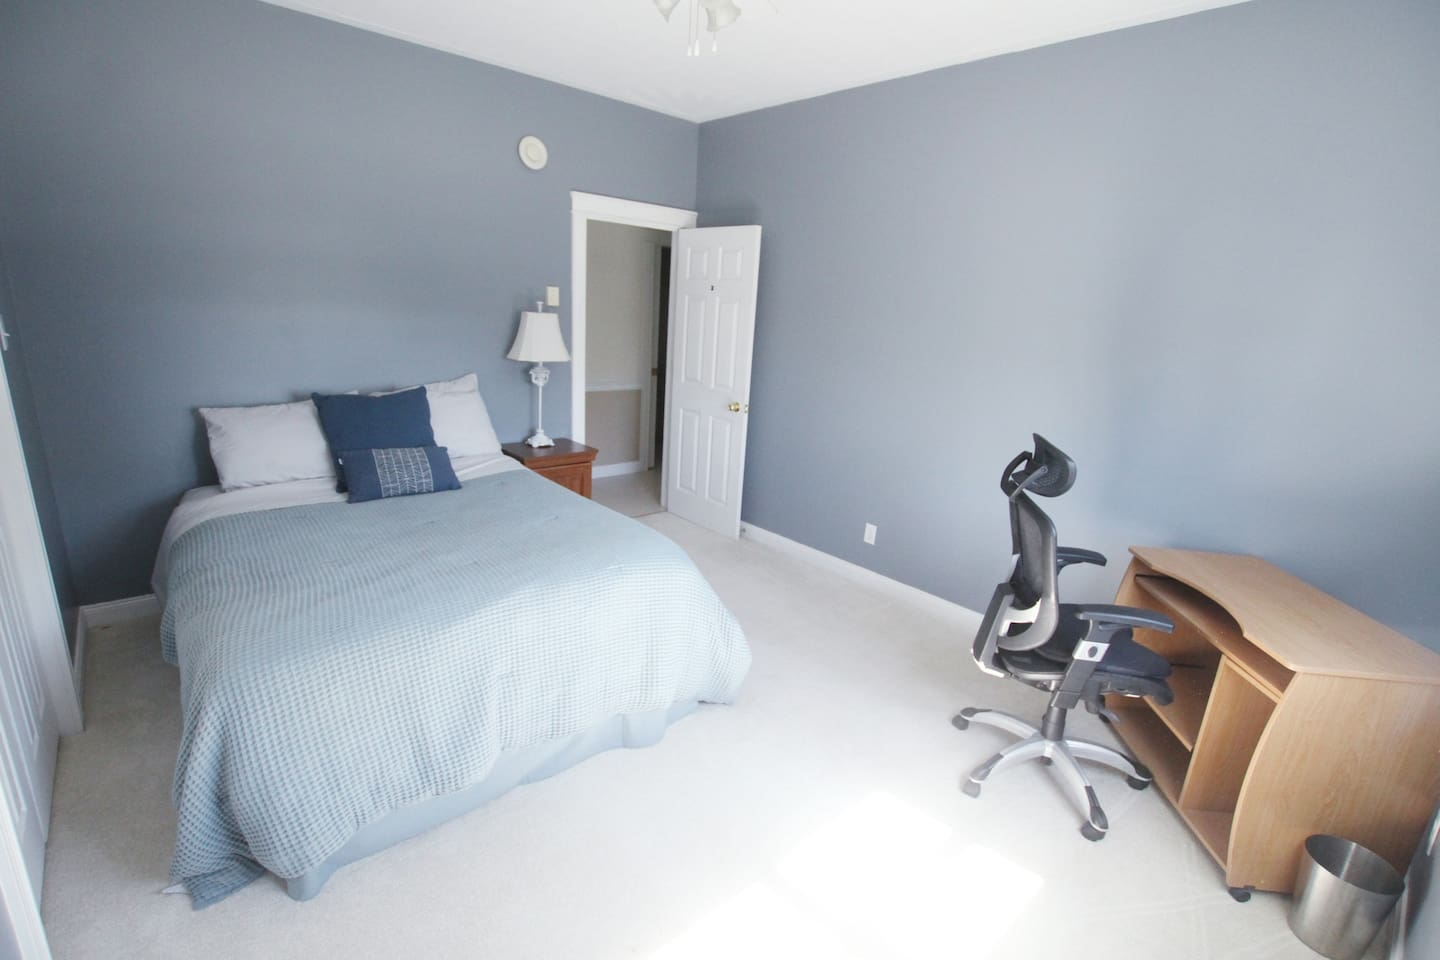 Queen size bed with a chair and desk work station.